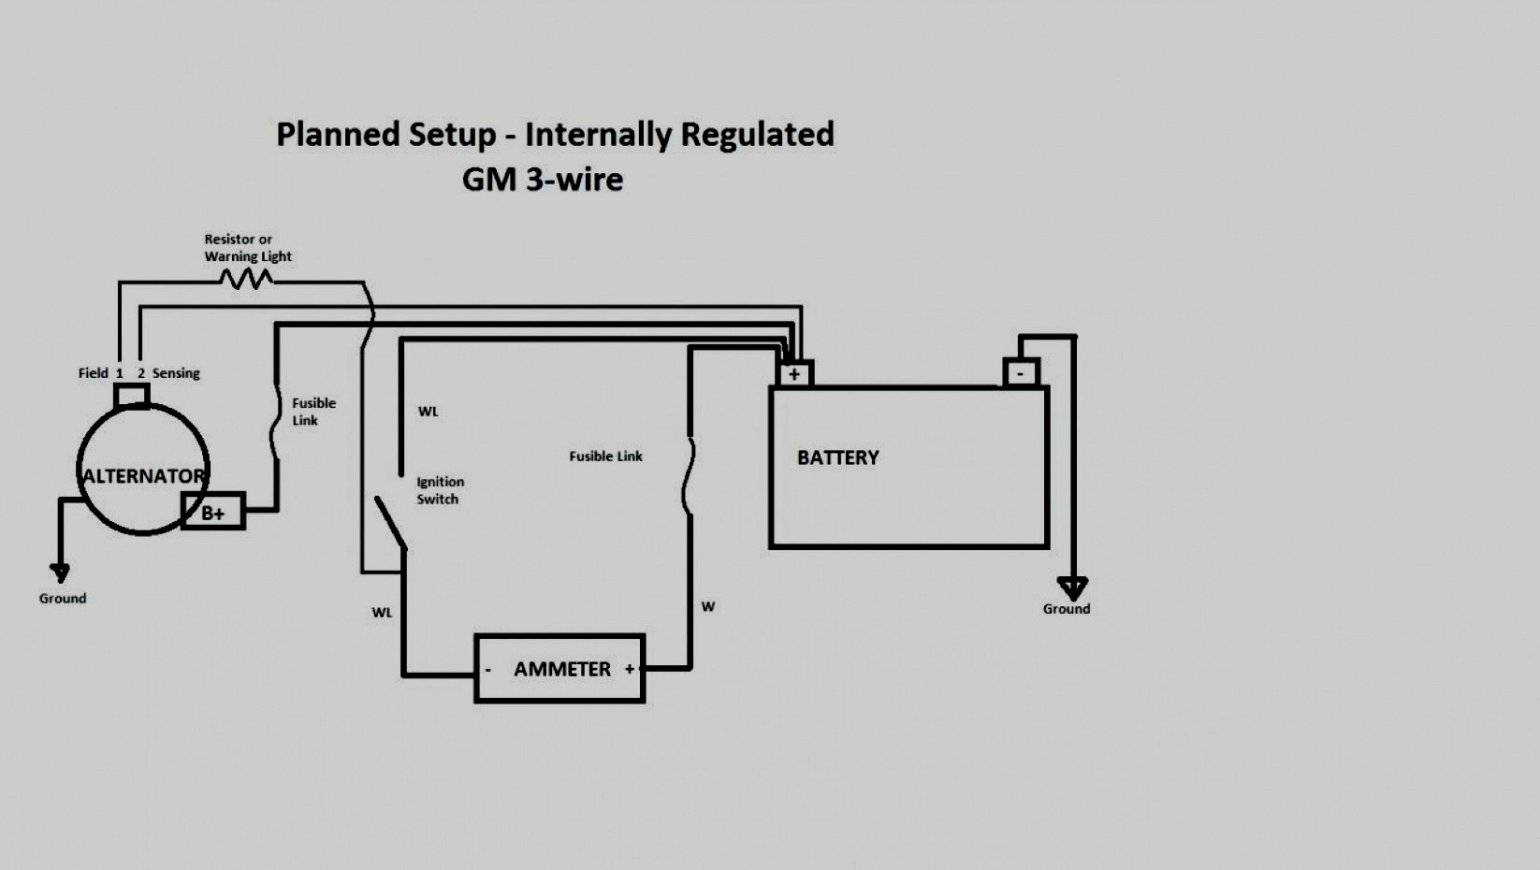 Gm 3 1 Wiring | Wiring Diagram - Gm 2 Wire Alternator Wiring Diagram